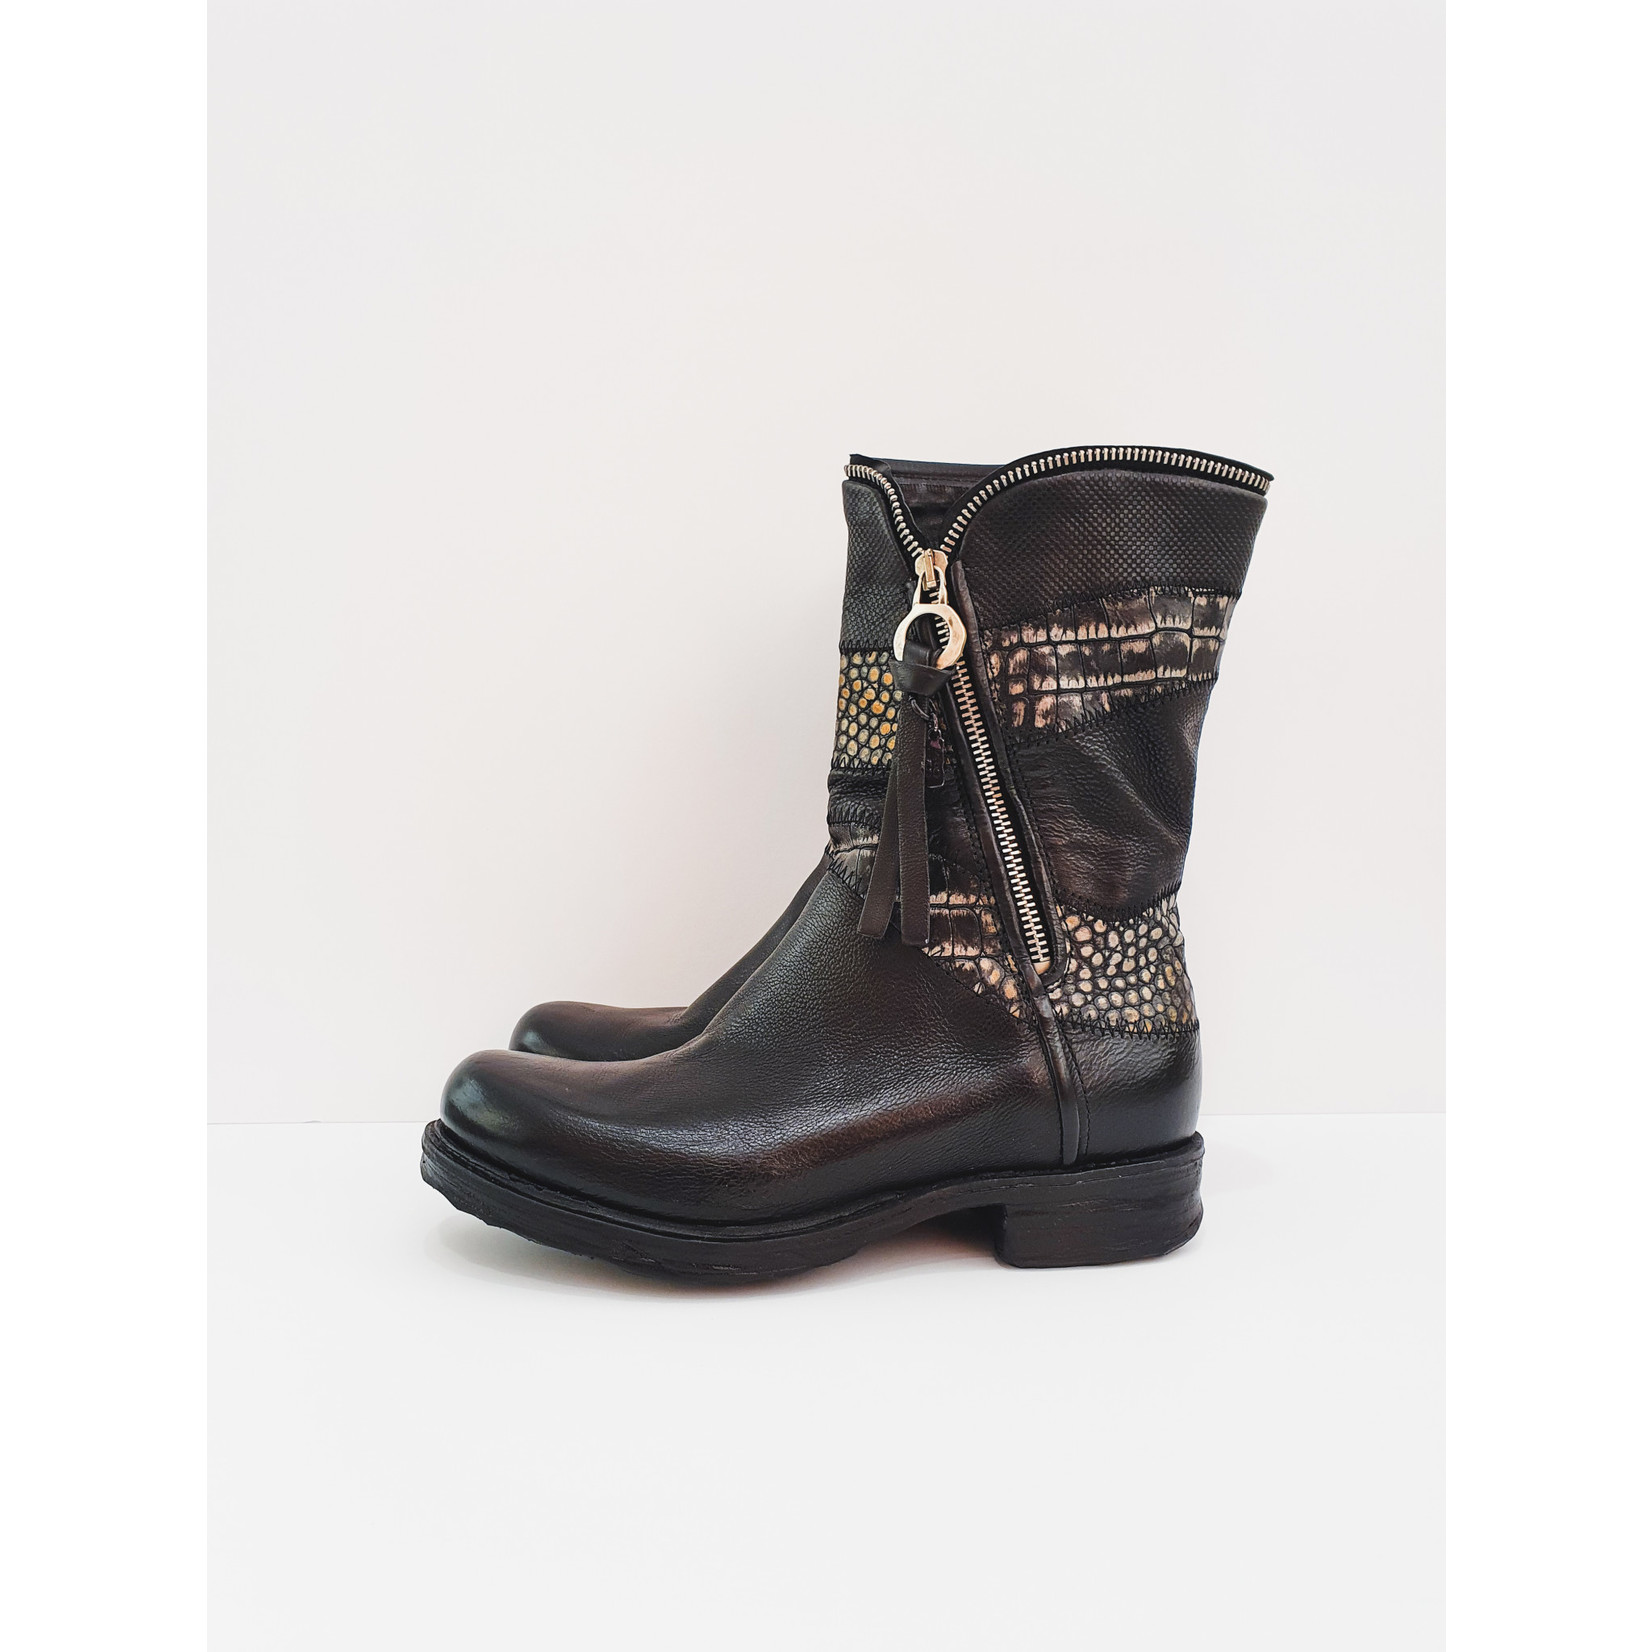 Perfect Patchwork boots